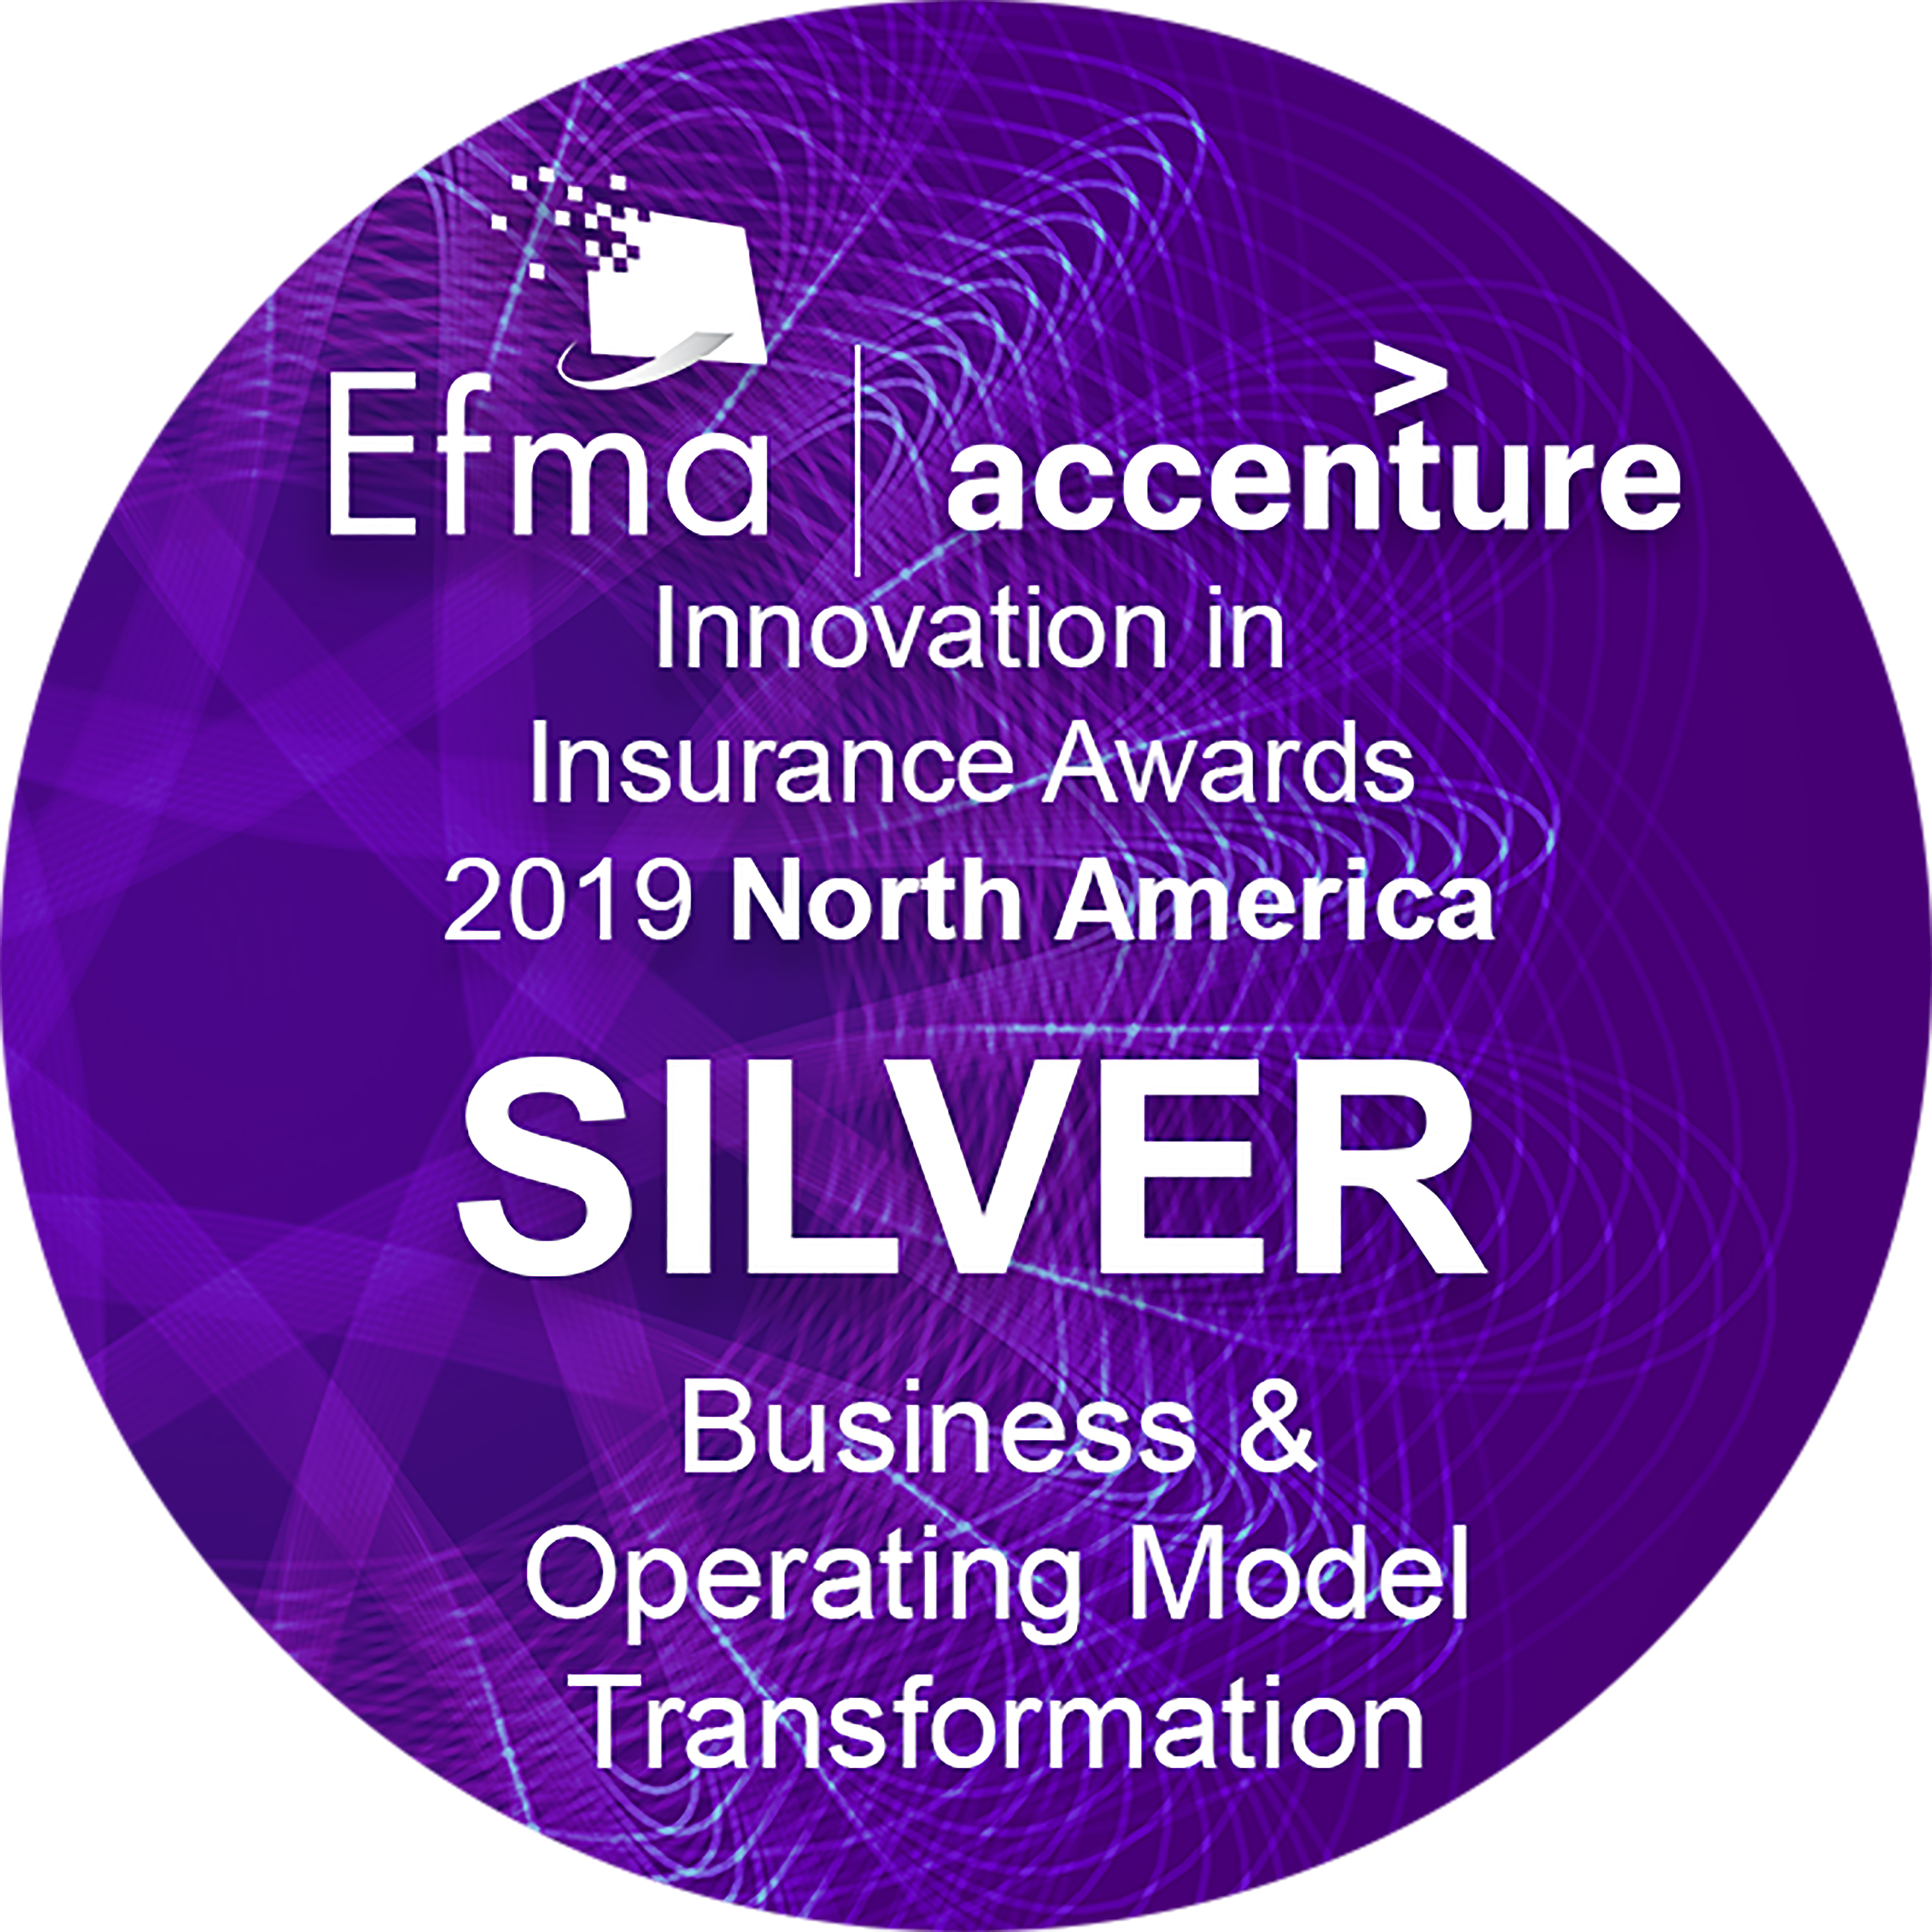 Efma-Accenture Innovation in Insurance Award logo